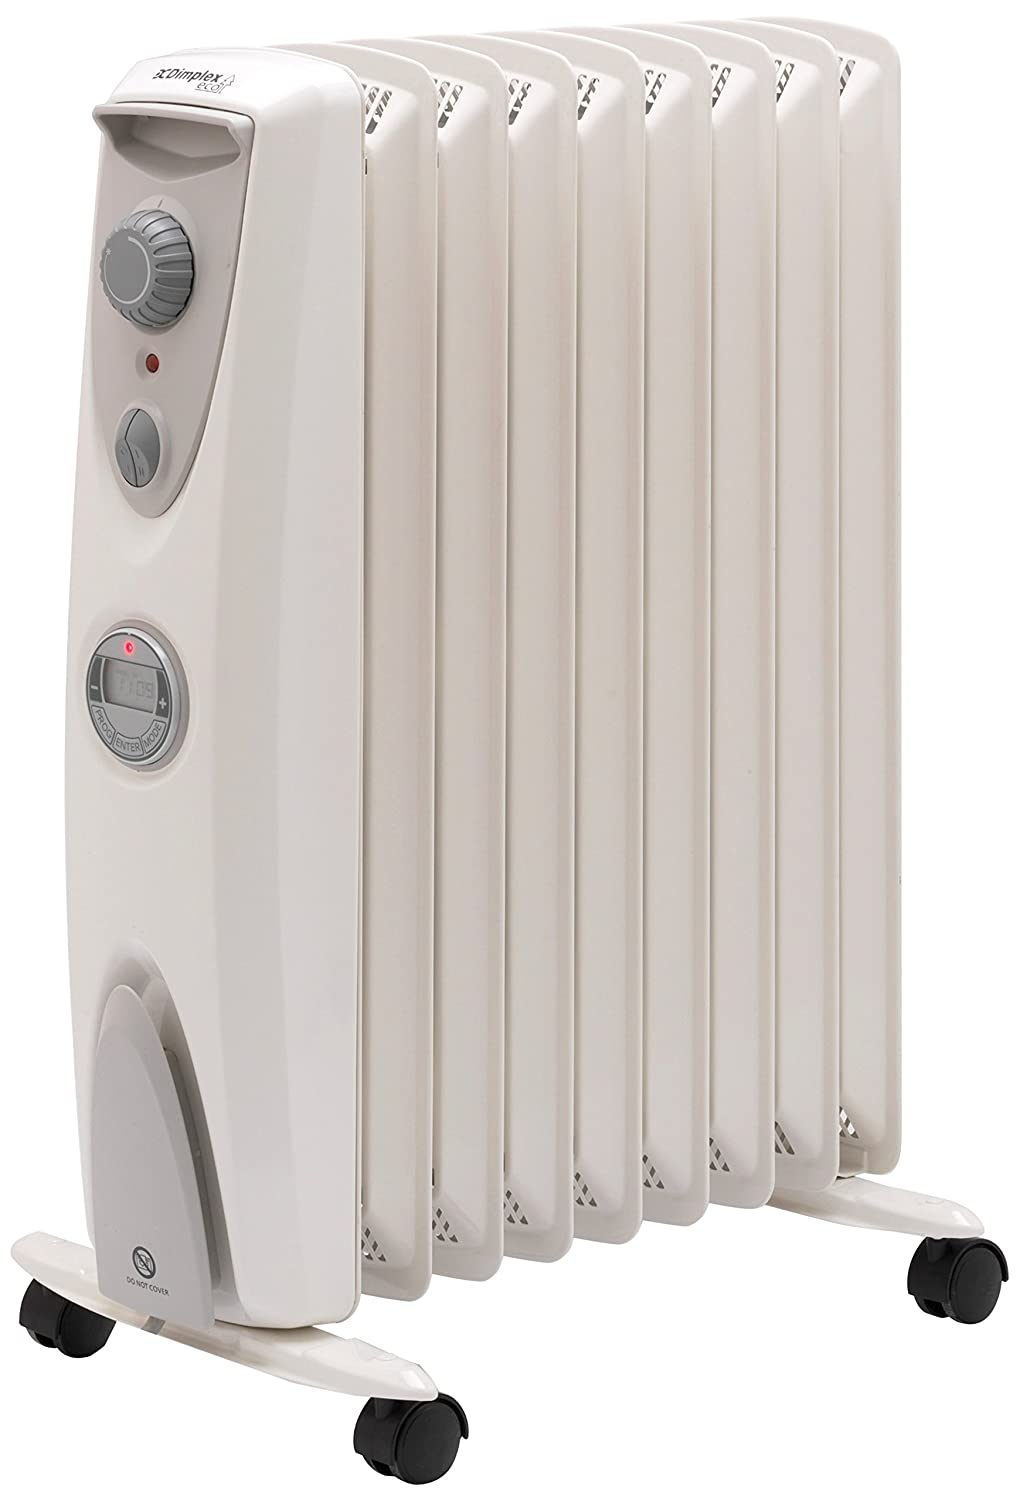 Dimplex OFRC20TiN 2 KW Oil Free Radiator with Timer [Energy Class A] OFCR20TiN